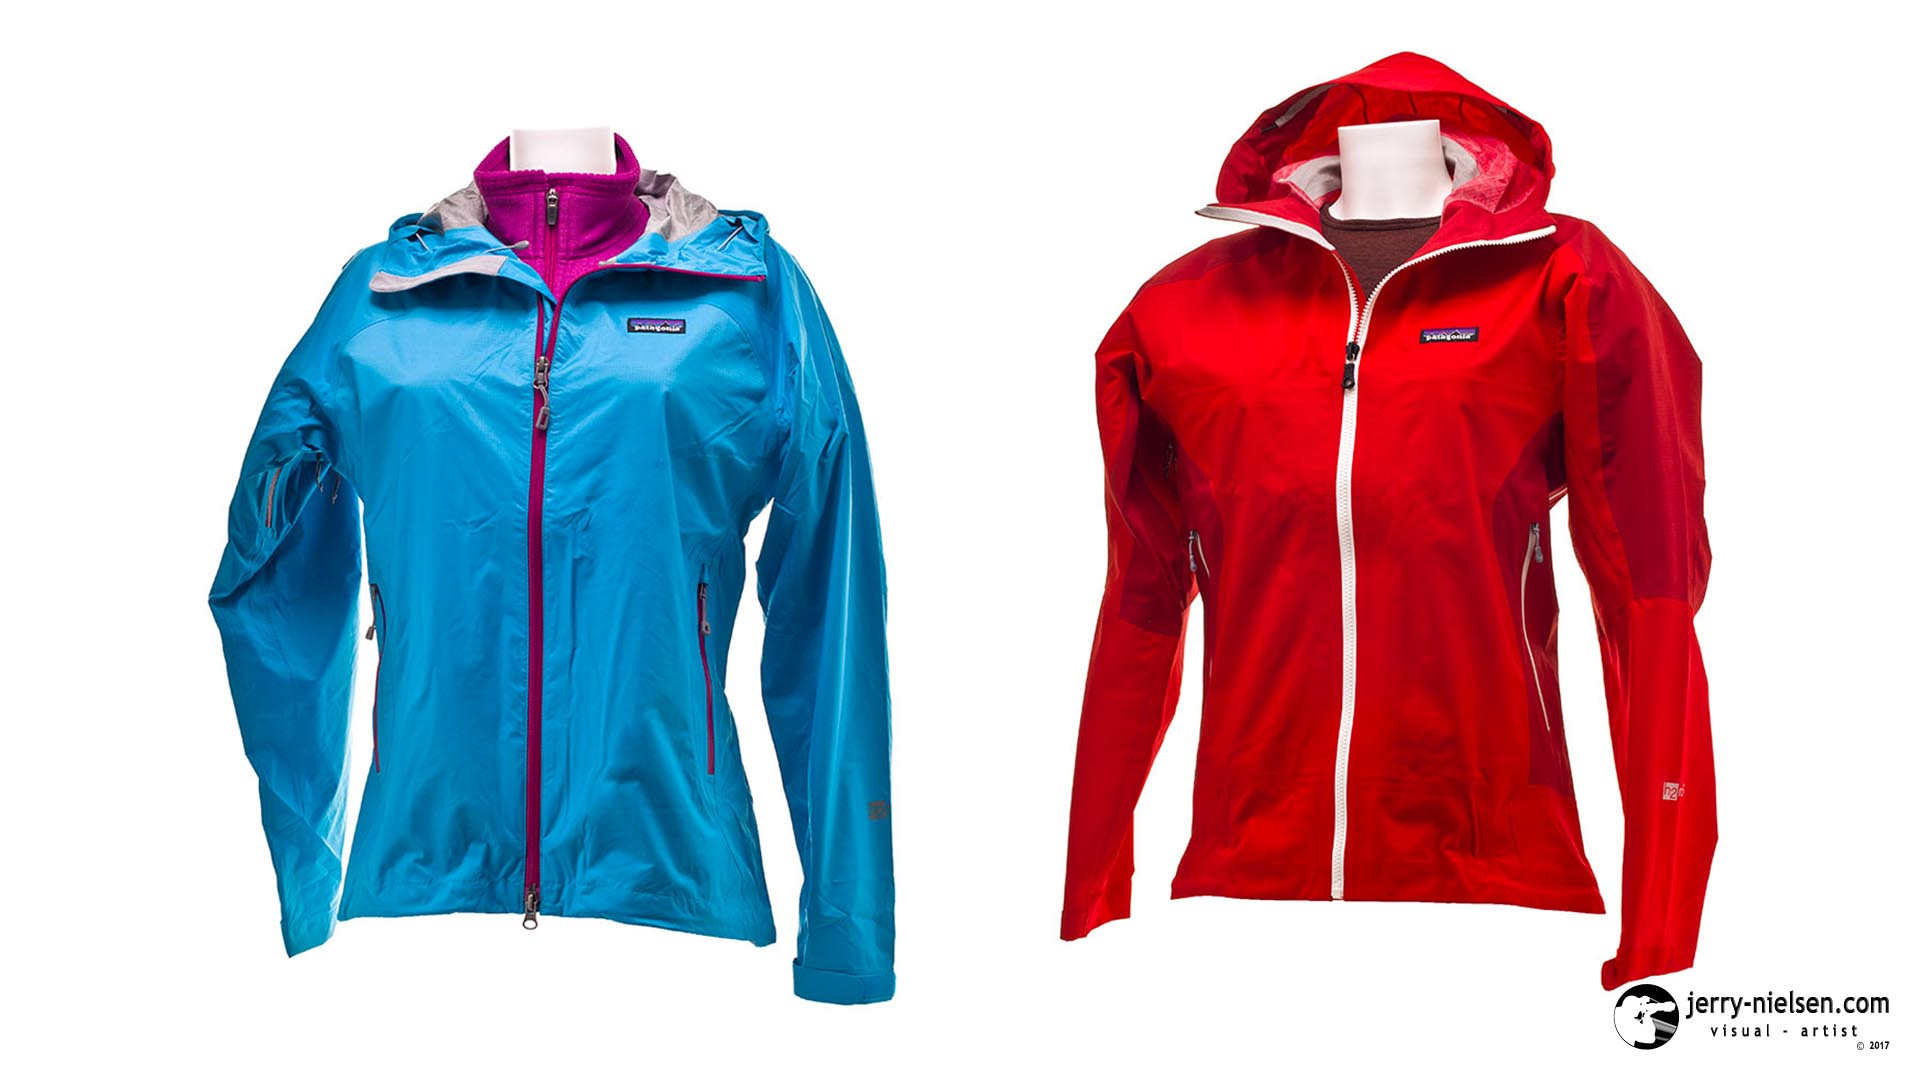 Patagonia Female Shell and Jacket